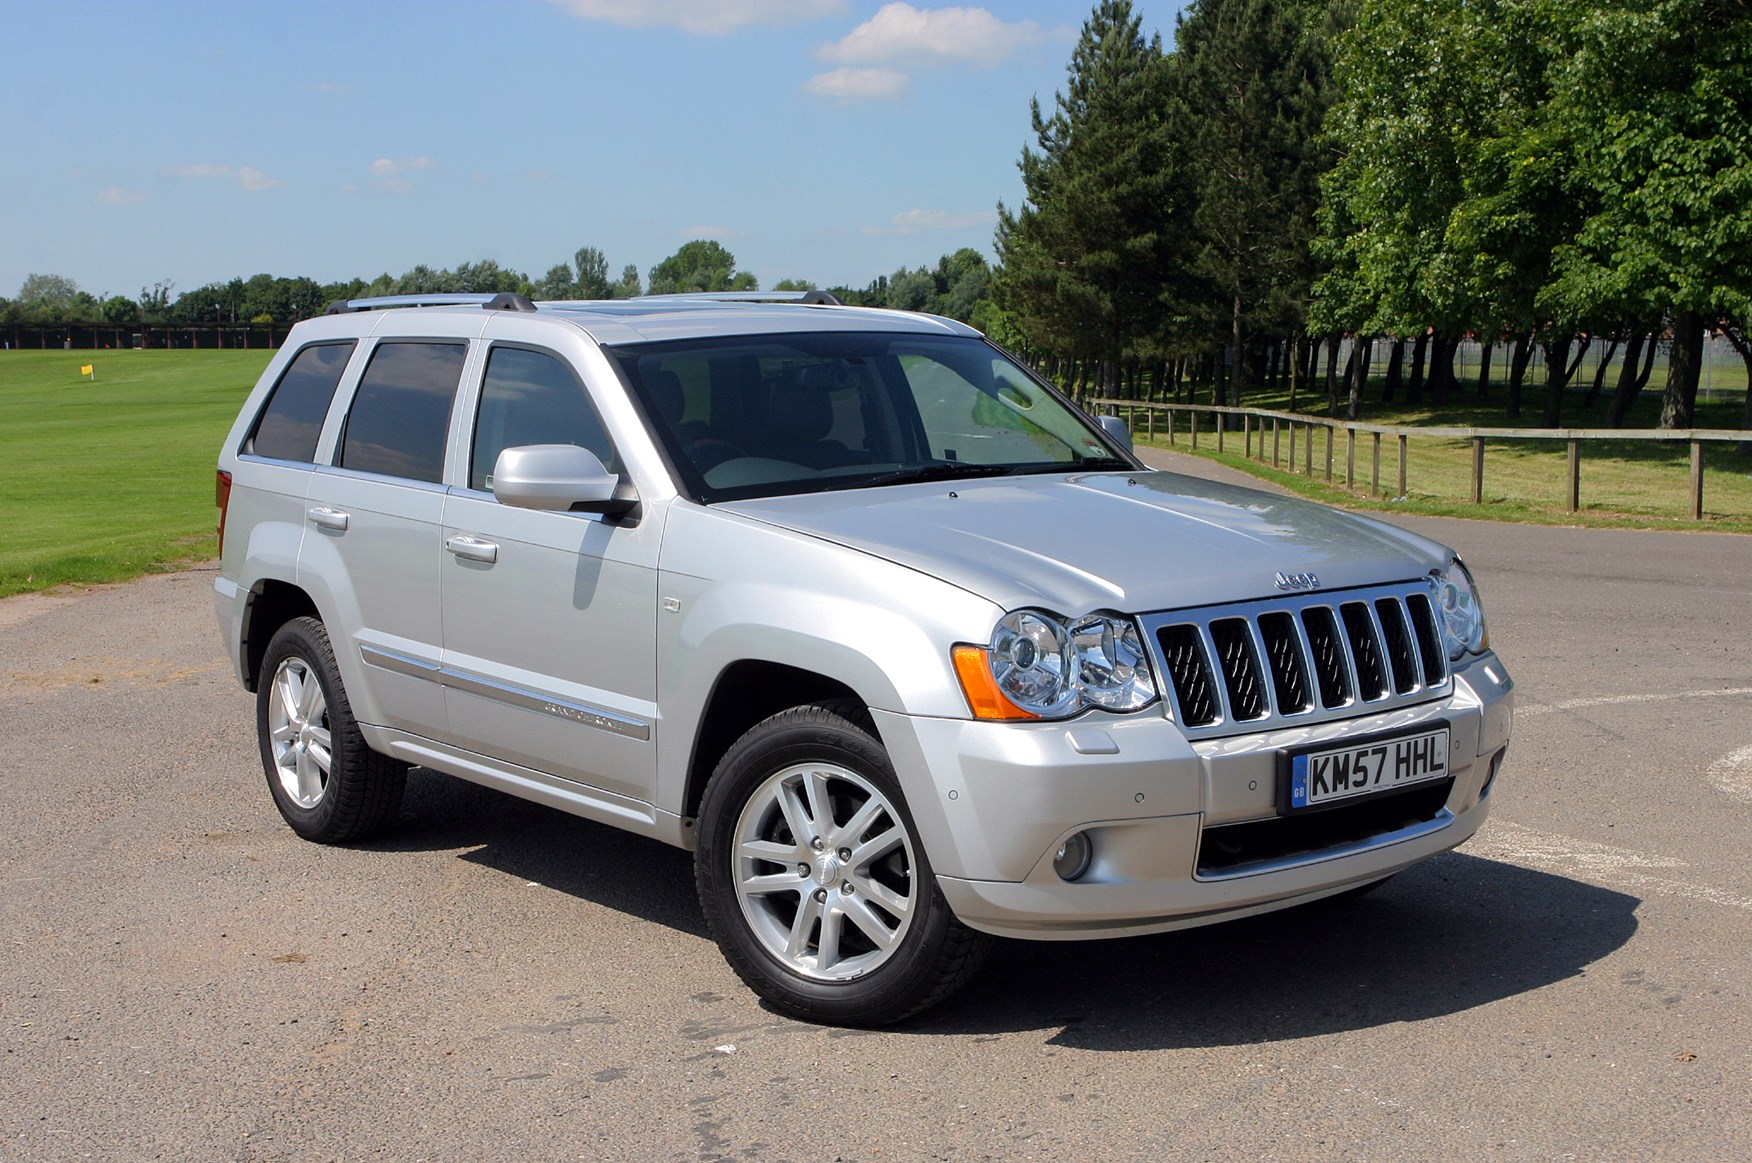 jeep grand cherokee station wagon review 2005 2010 parkers. Black Bedroom Furniture Sets. Home Design Ideas